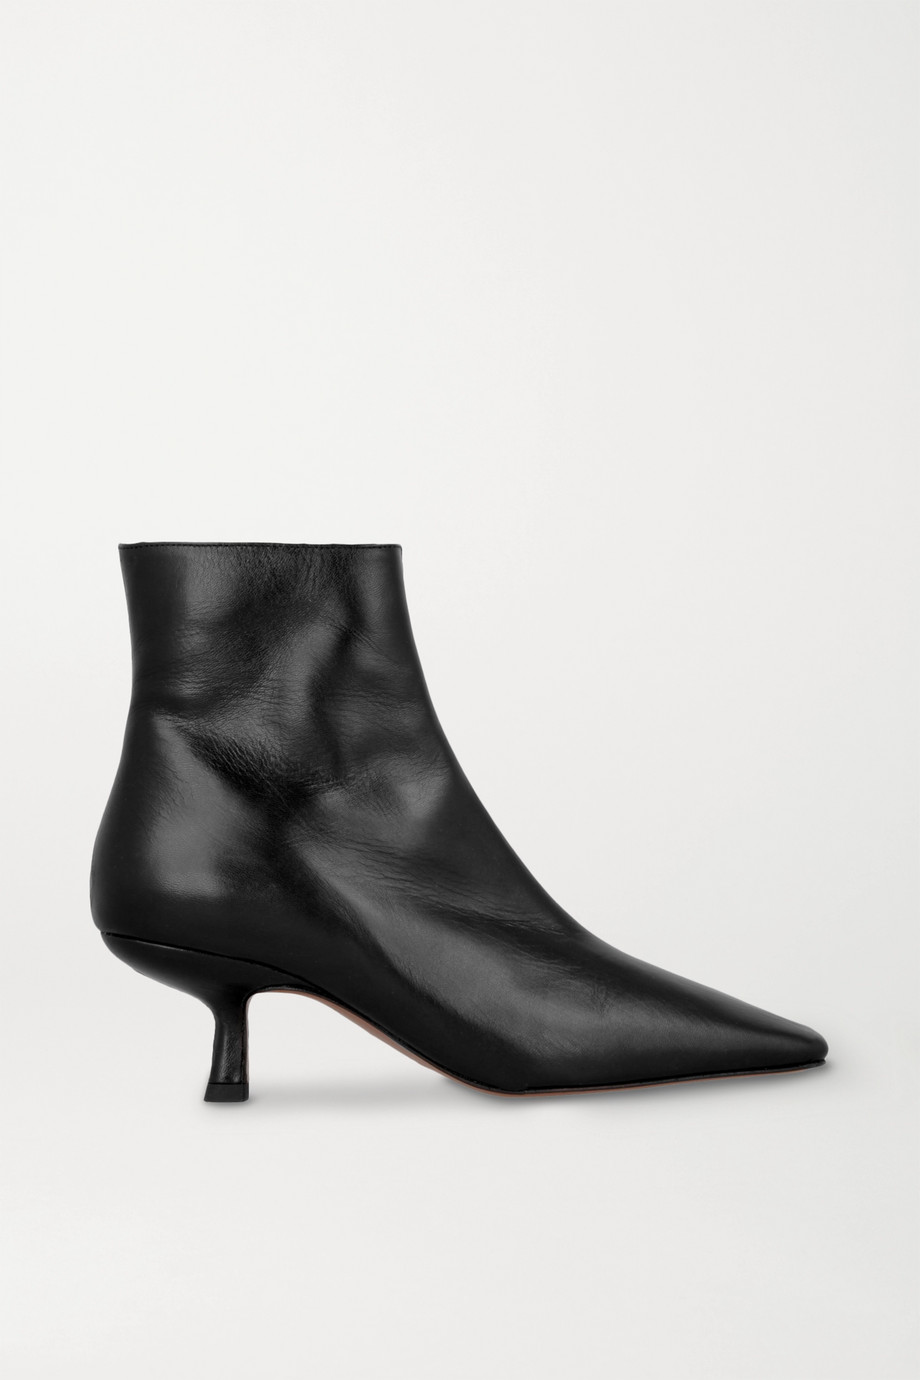 BY FAR Bottines en cuir Lange